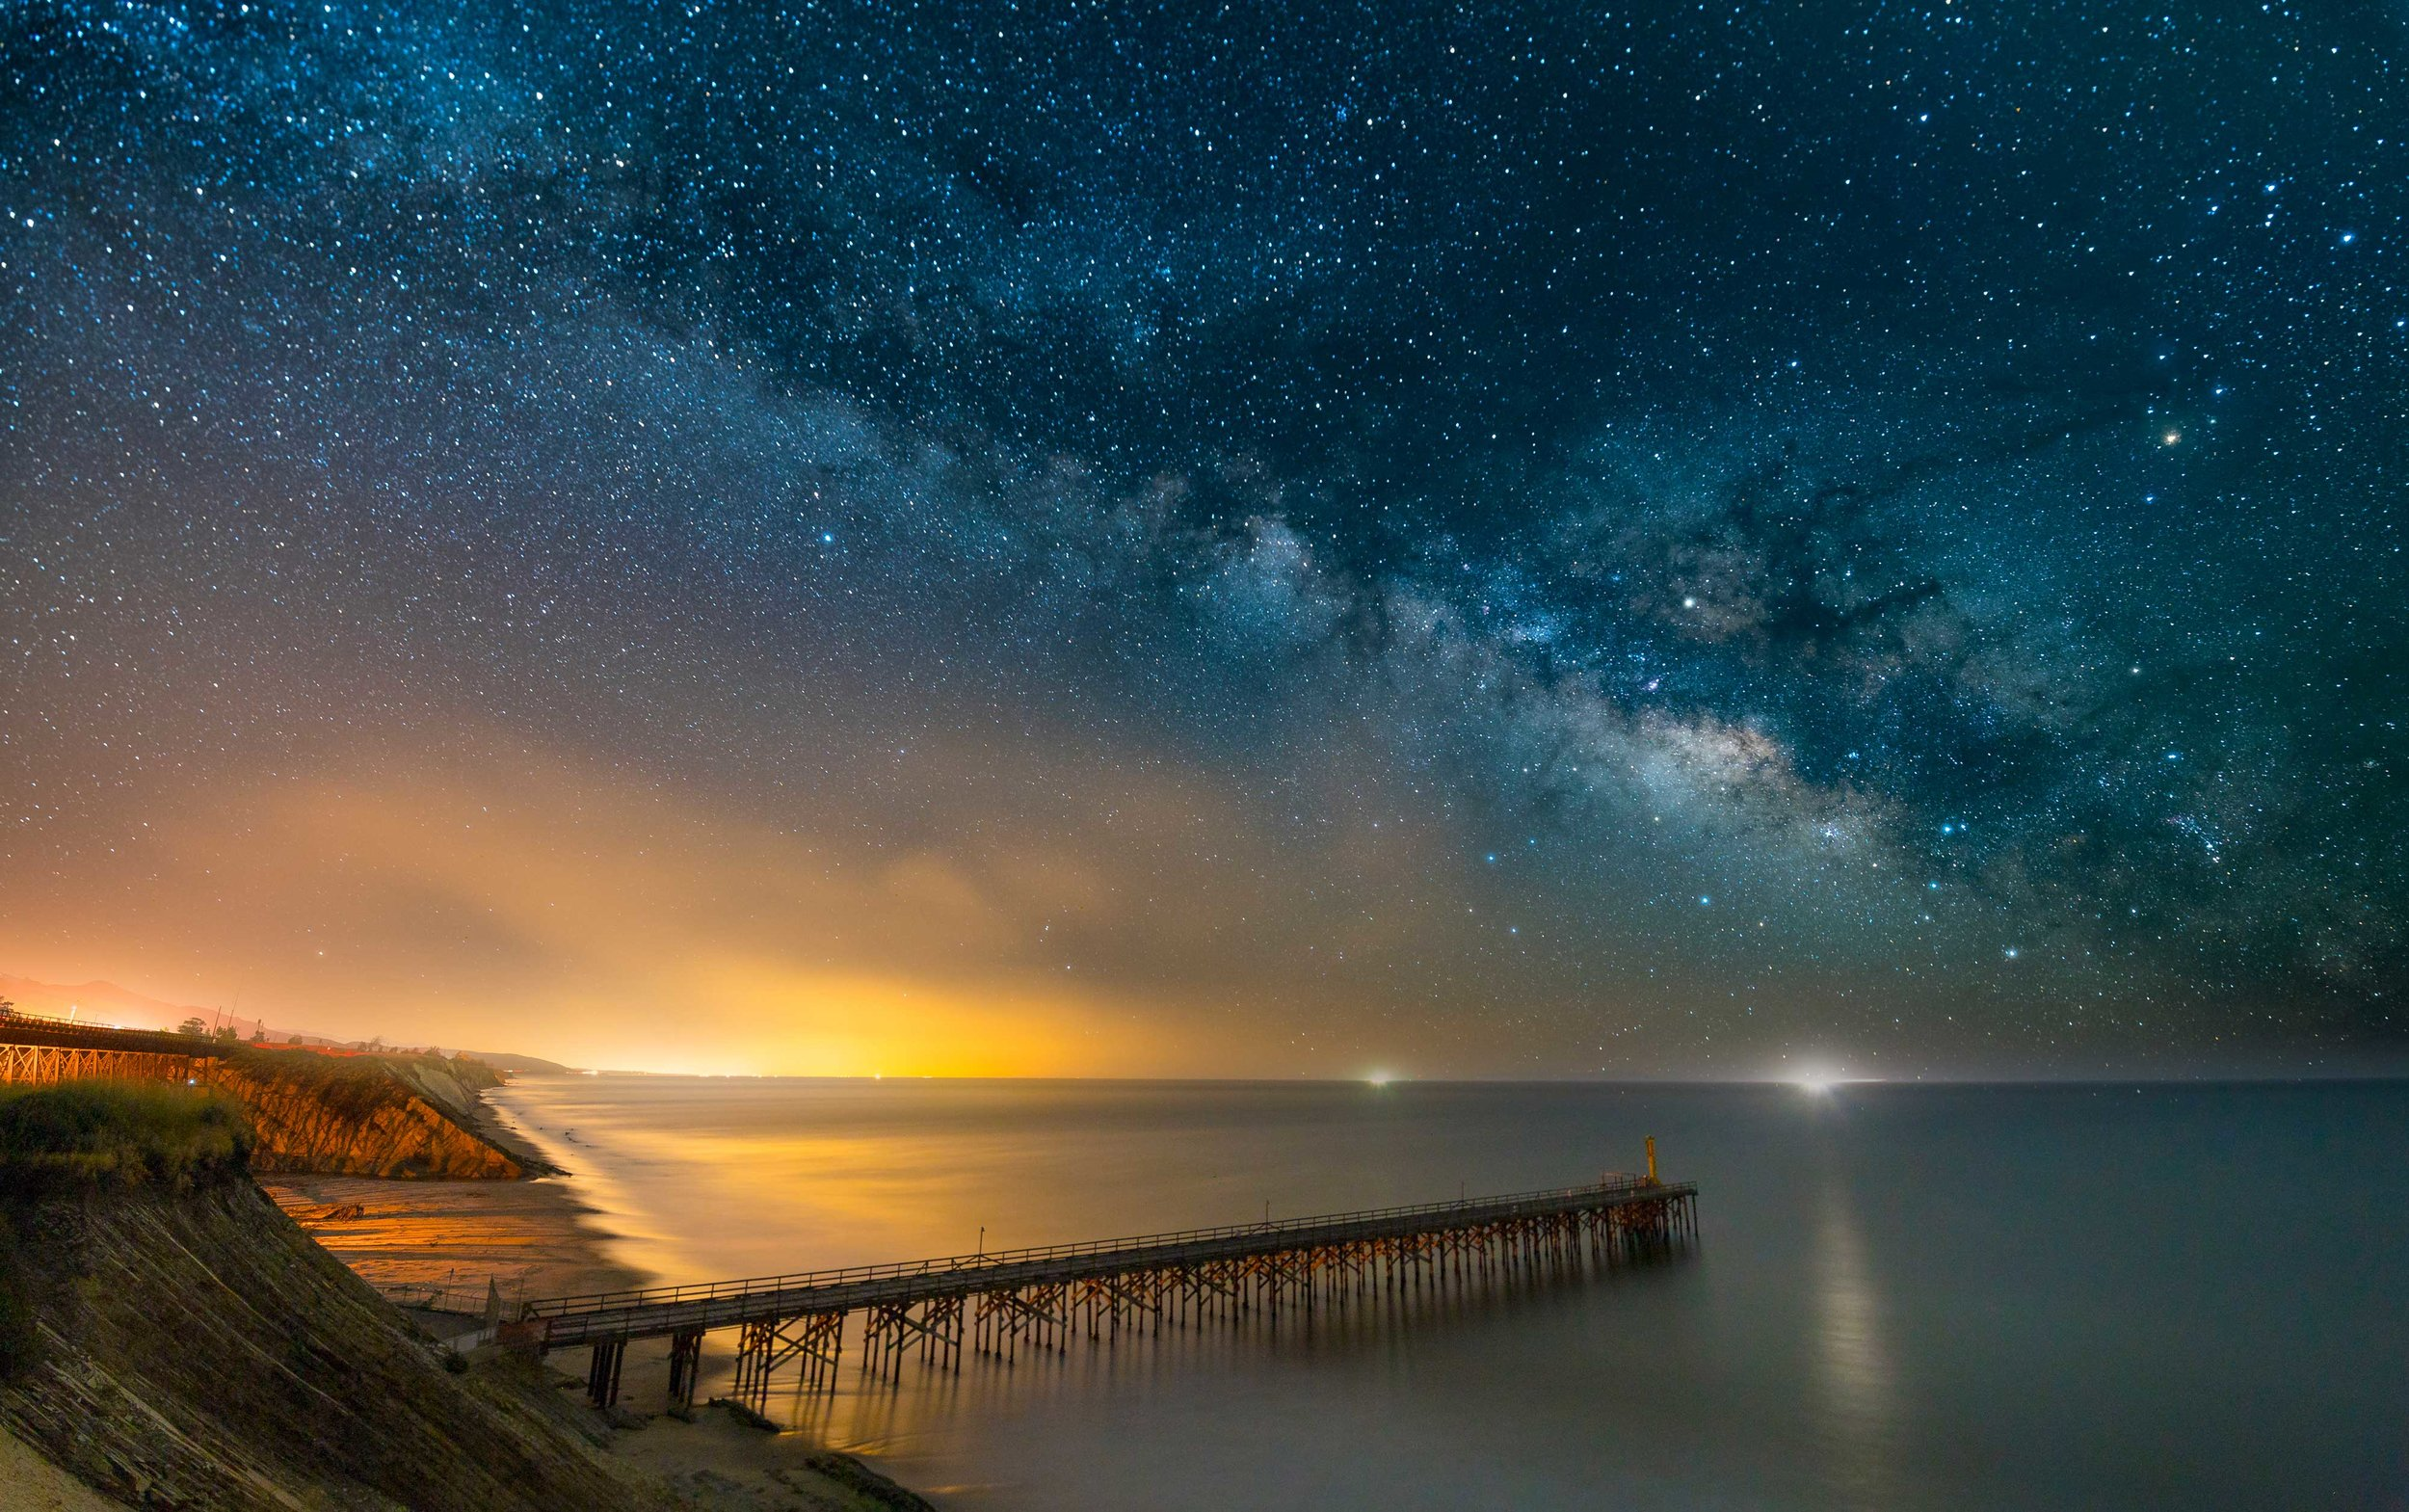 A composite image, using the sky captured with a star tracker, and the foreground captured on a stationary tripod. Editing and compositing done in Adobe Lightroom and Photoshop.